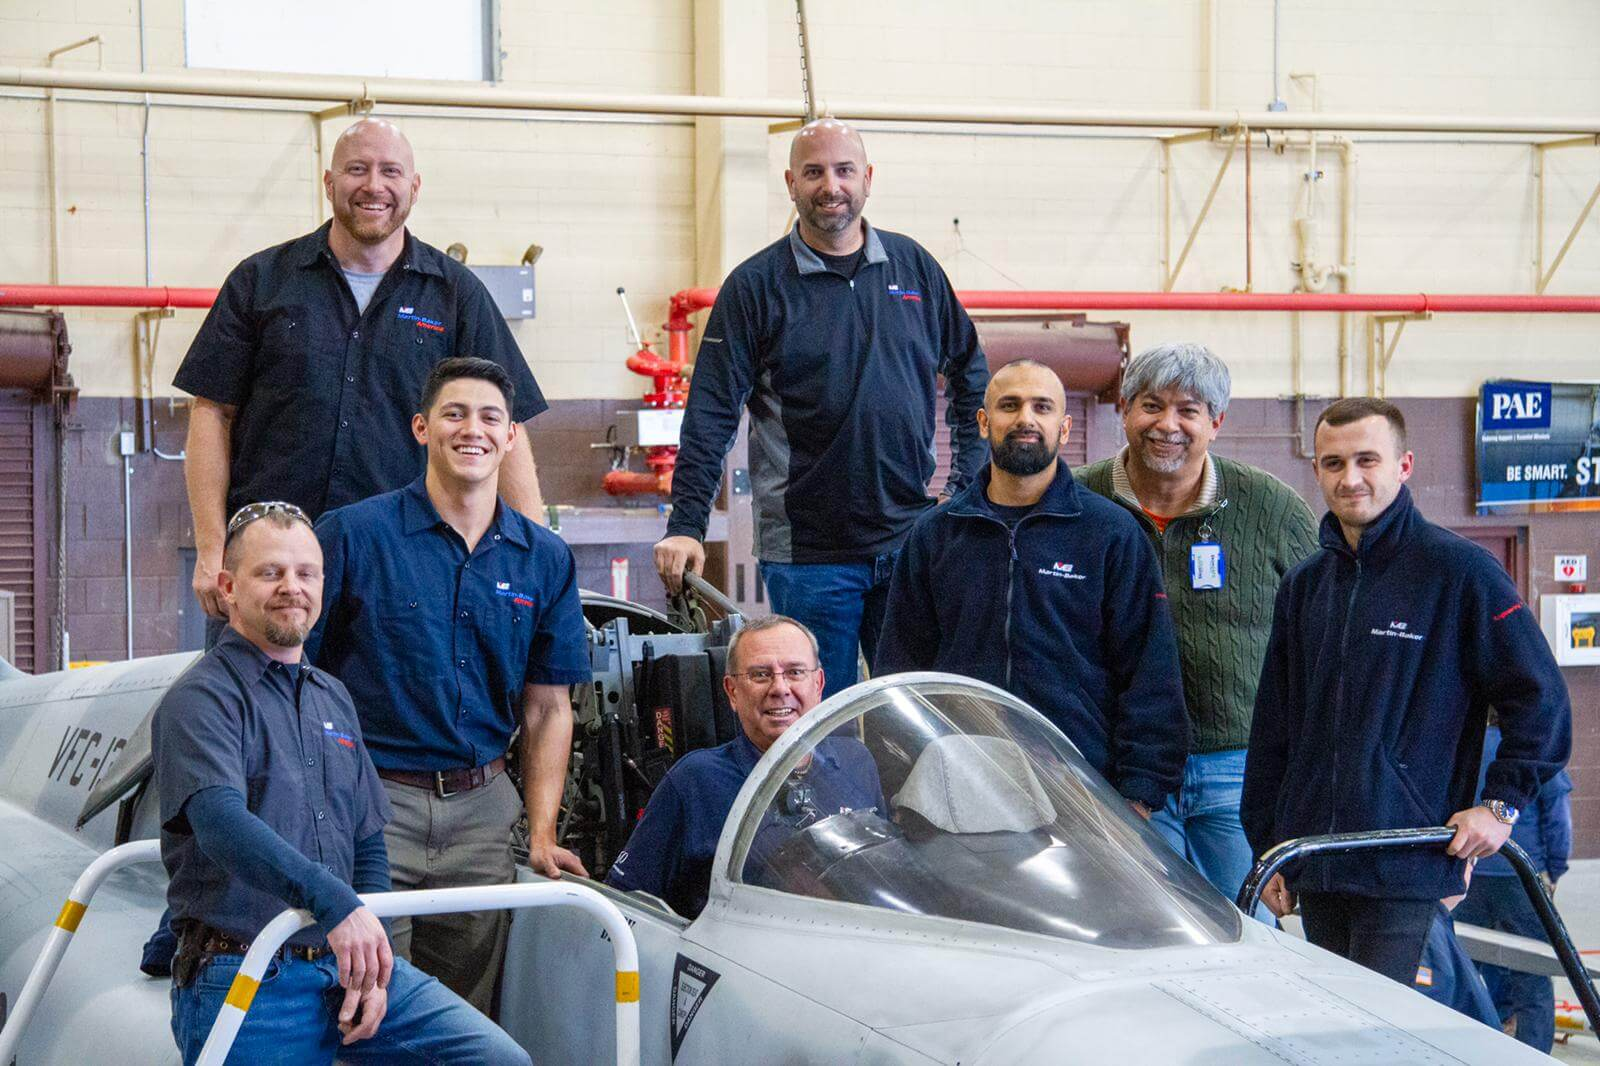 The Martin-Baker team are pictured here at NAS Fallon during the seat installation on the 5th December 2019.